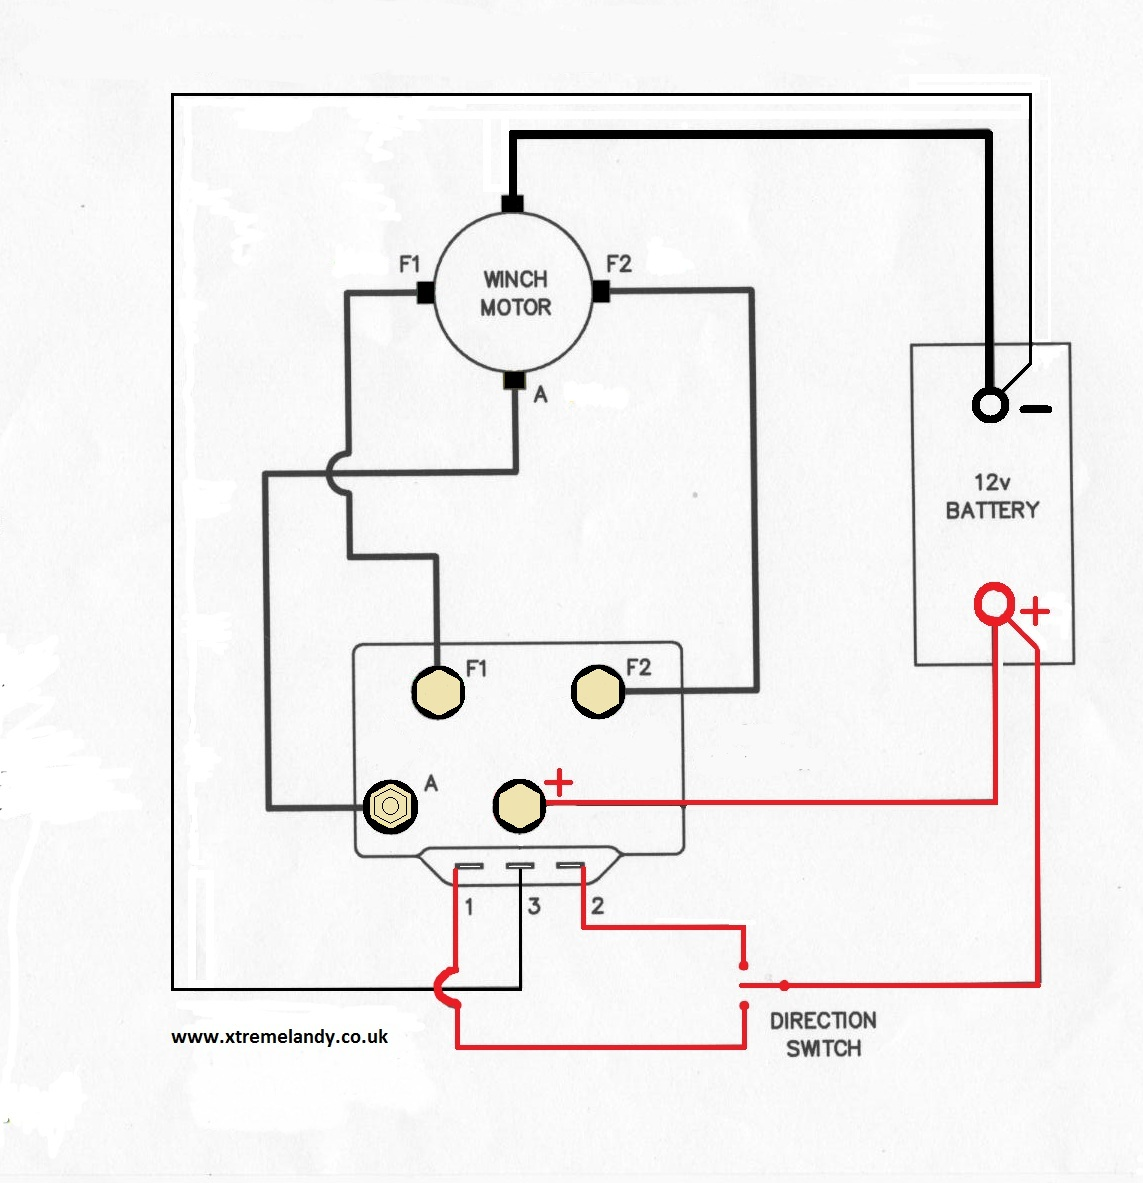 Albright Simple Wiring 4 wire alternator wiring diagram annavernon readingrat net 4 post continuous duty solenoid wiring diagram at highcare.asia